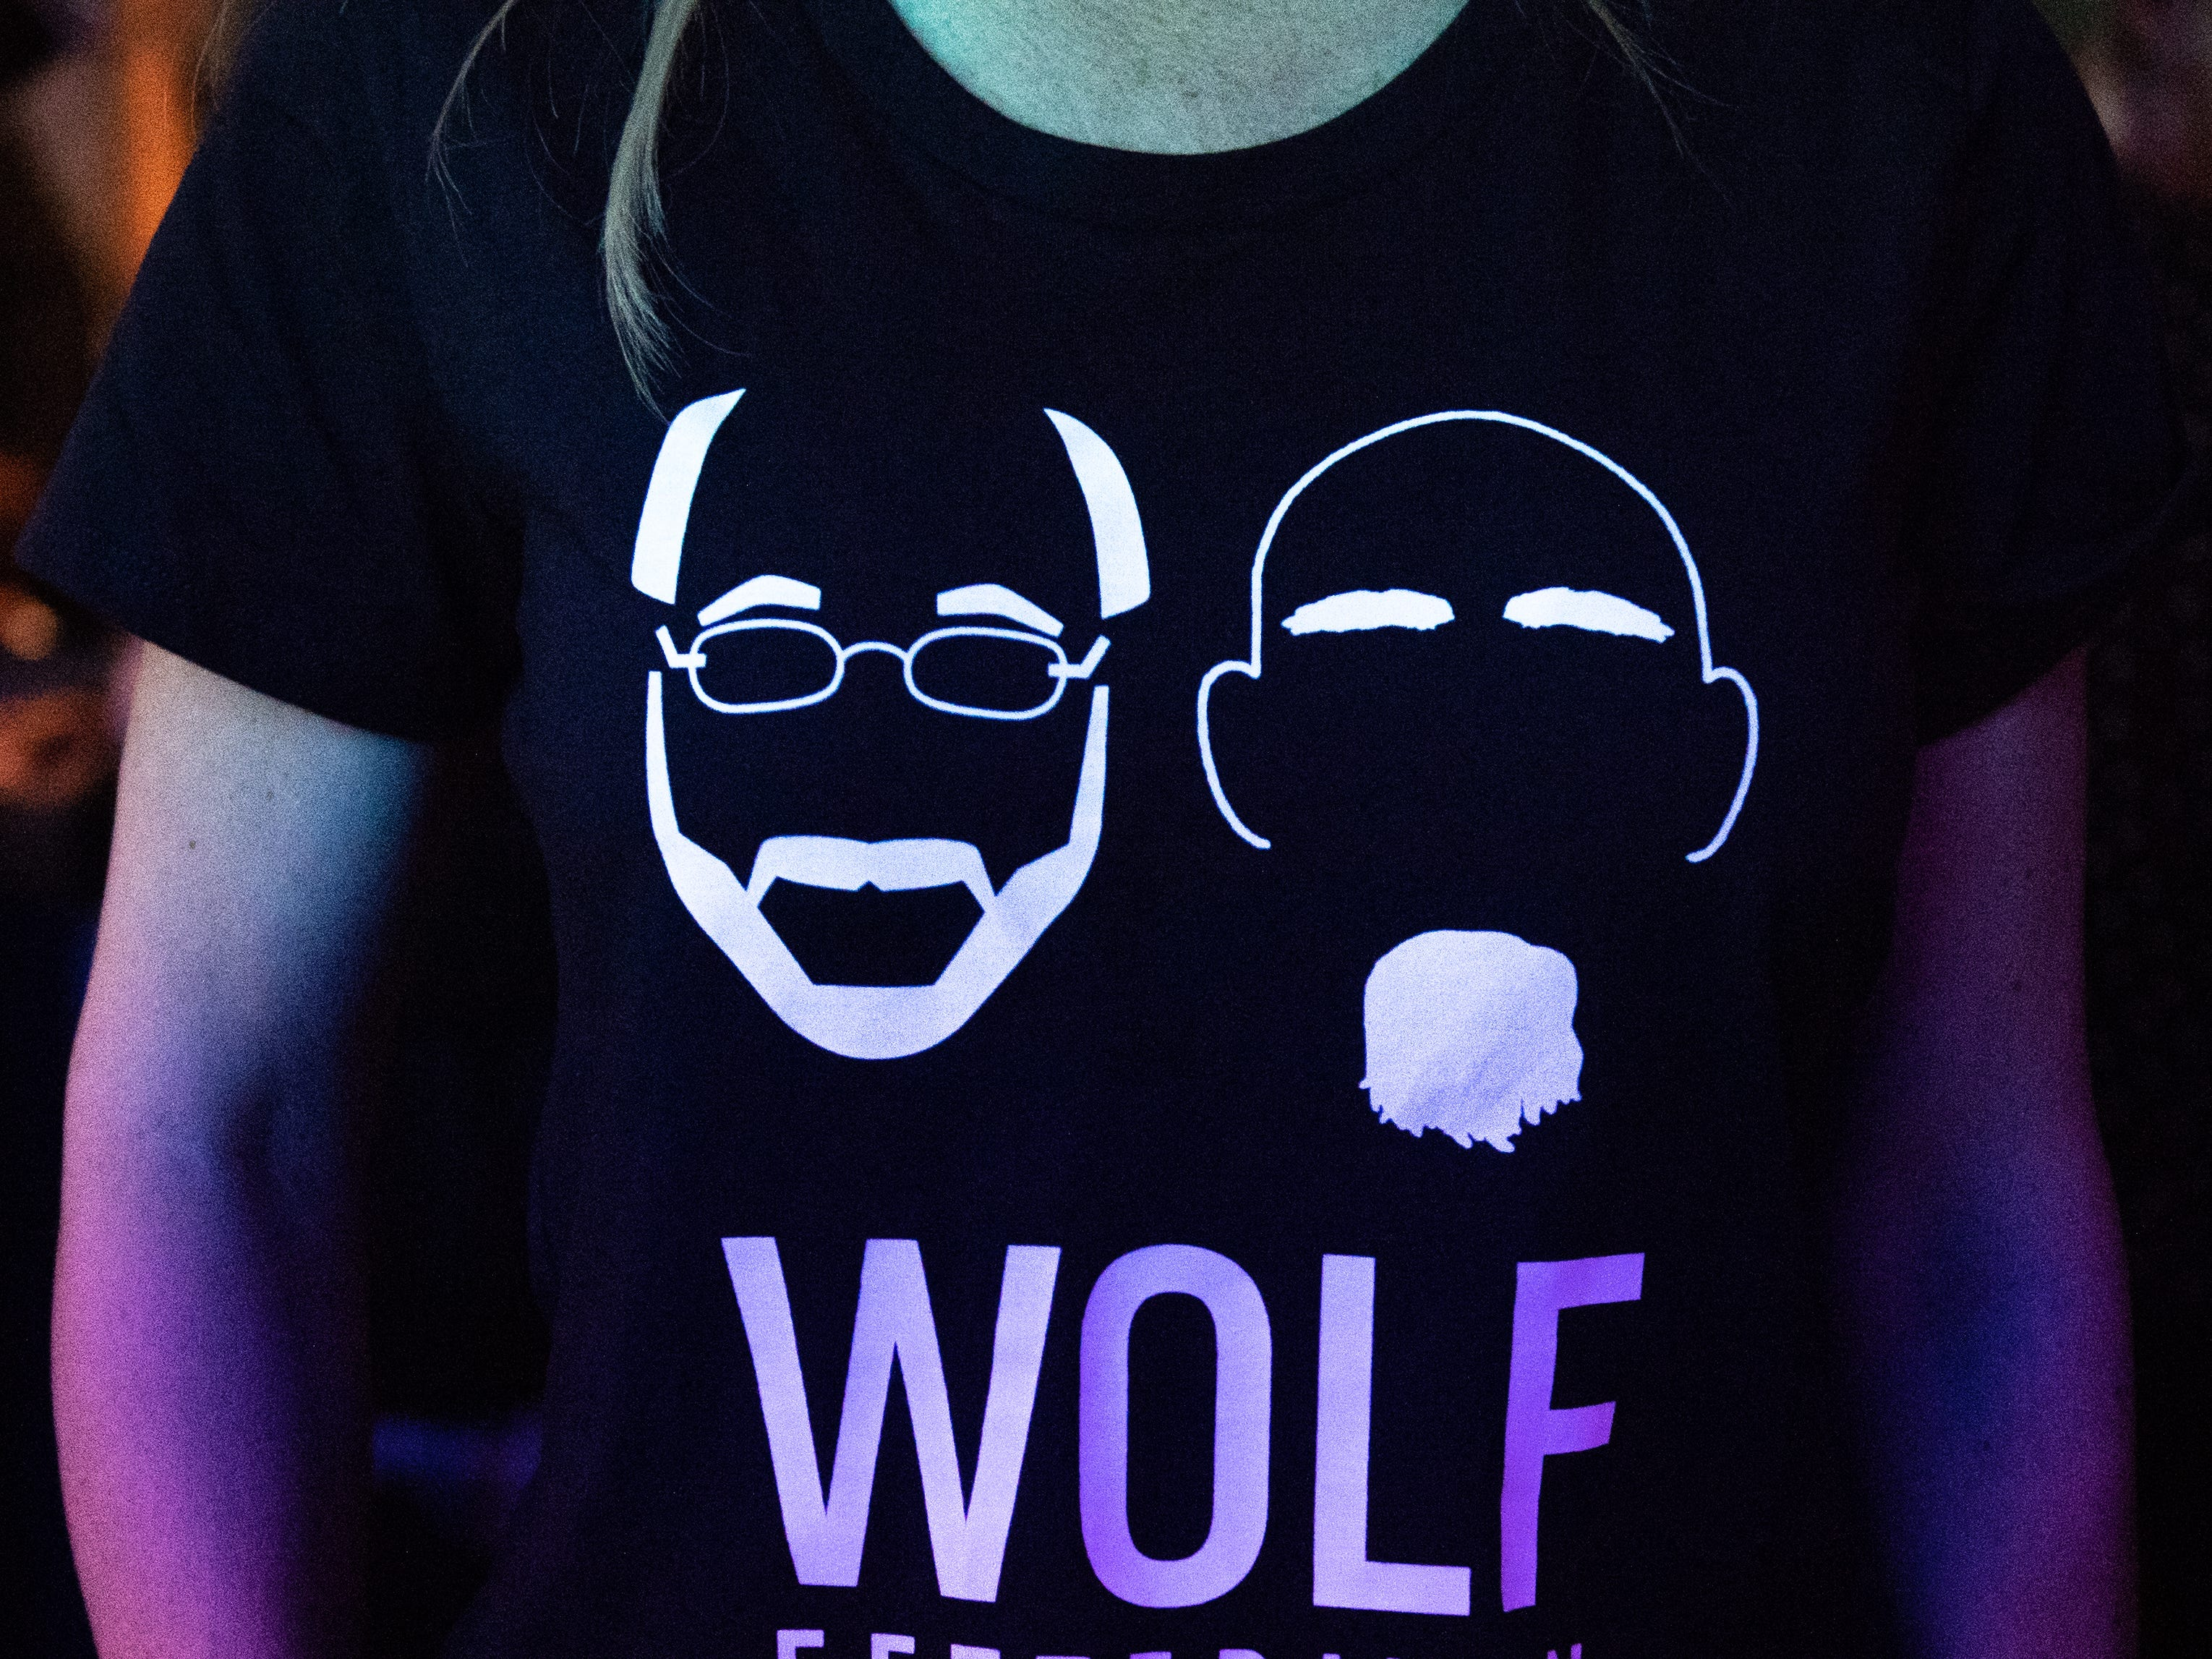 Supporters wore a variety of campaign shirts during the Governor Wolf and Mayor Fetterman Election Night Party at The Bond, Tuesday, November 6, 2018. Tom Wolf was re-elected as Governor of Pennsylvania after defeating Scott Wagner.